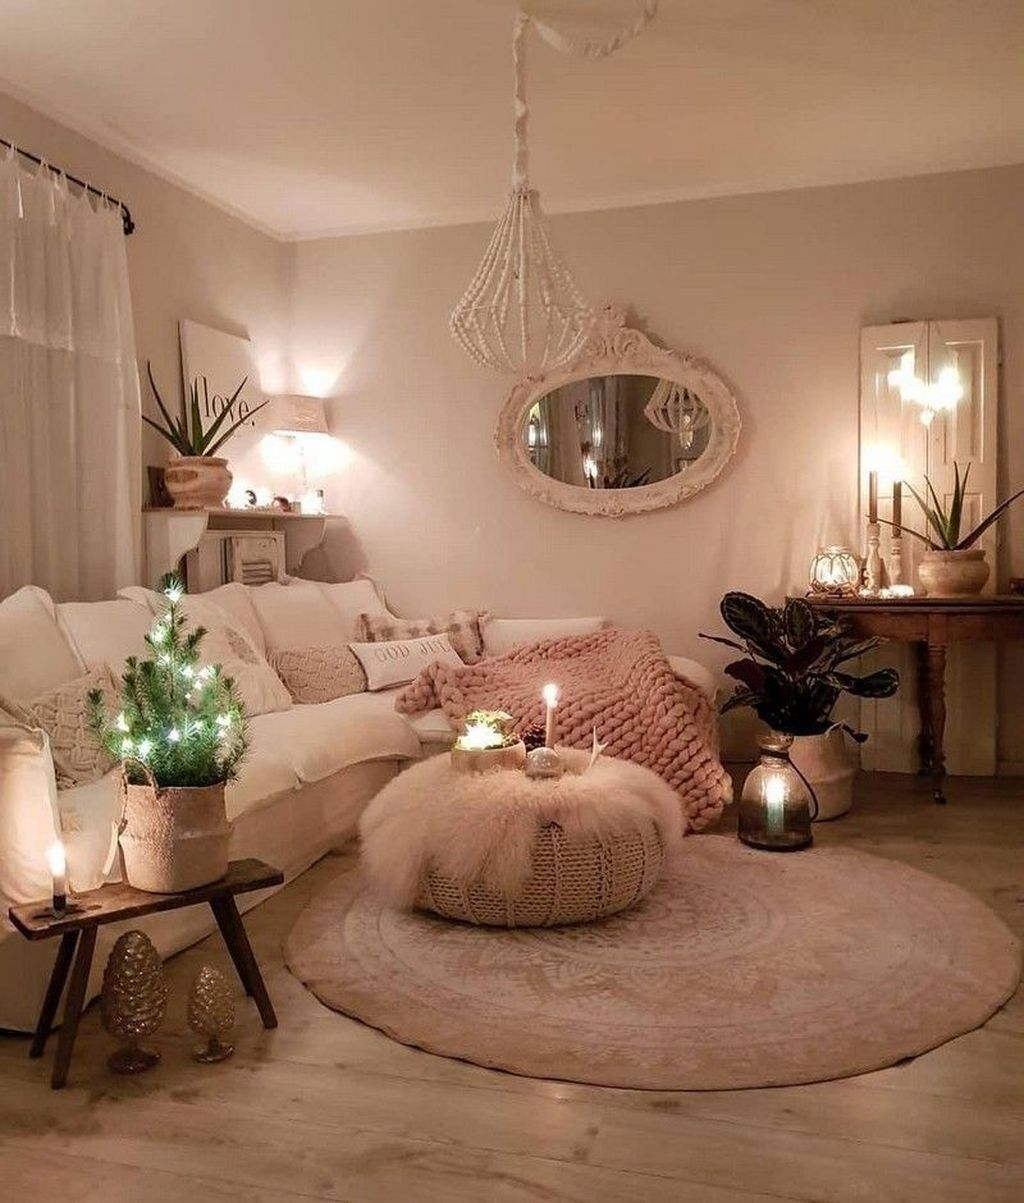 Pin By Insplosion On Living Room On A Budget Bohemian Living Room Decor Cosy Home Decor First Apartment Decorating